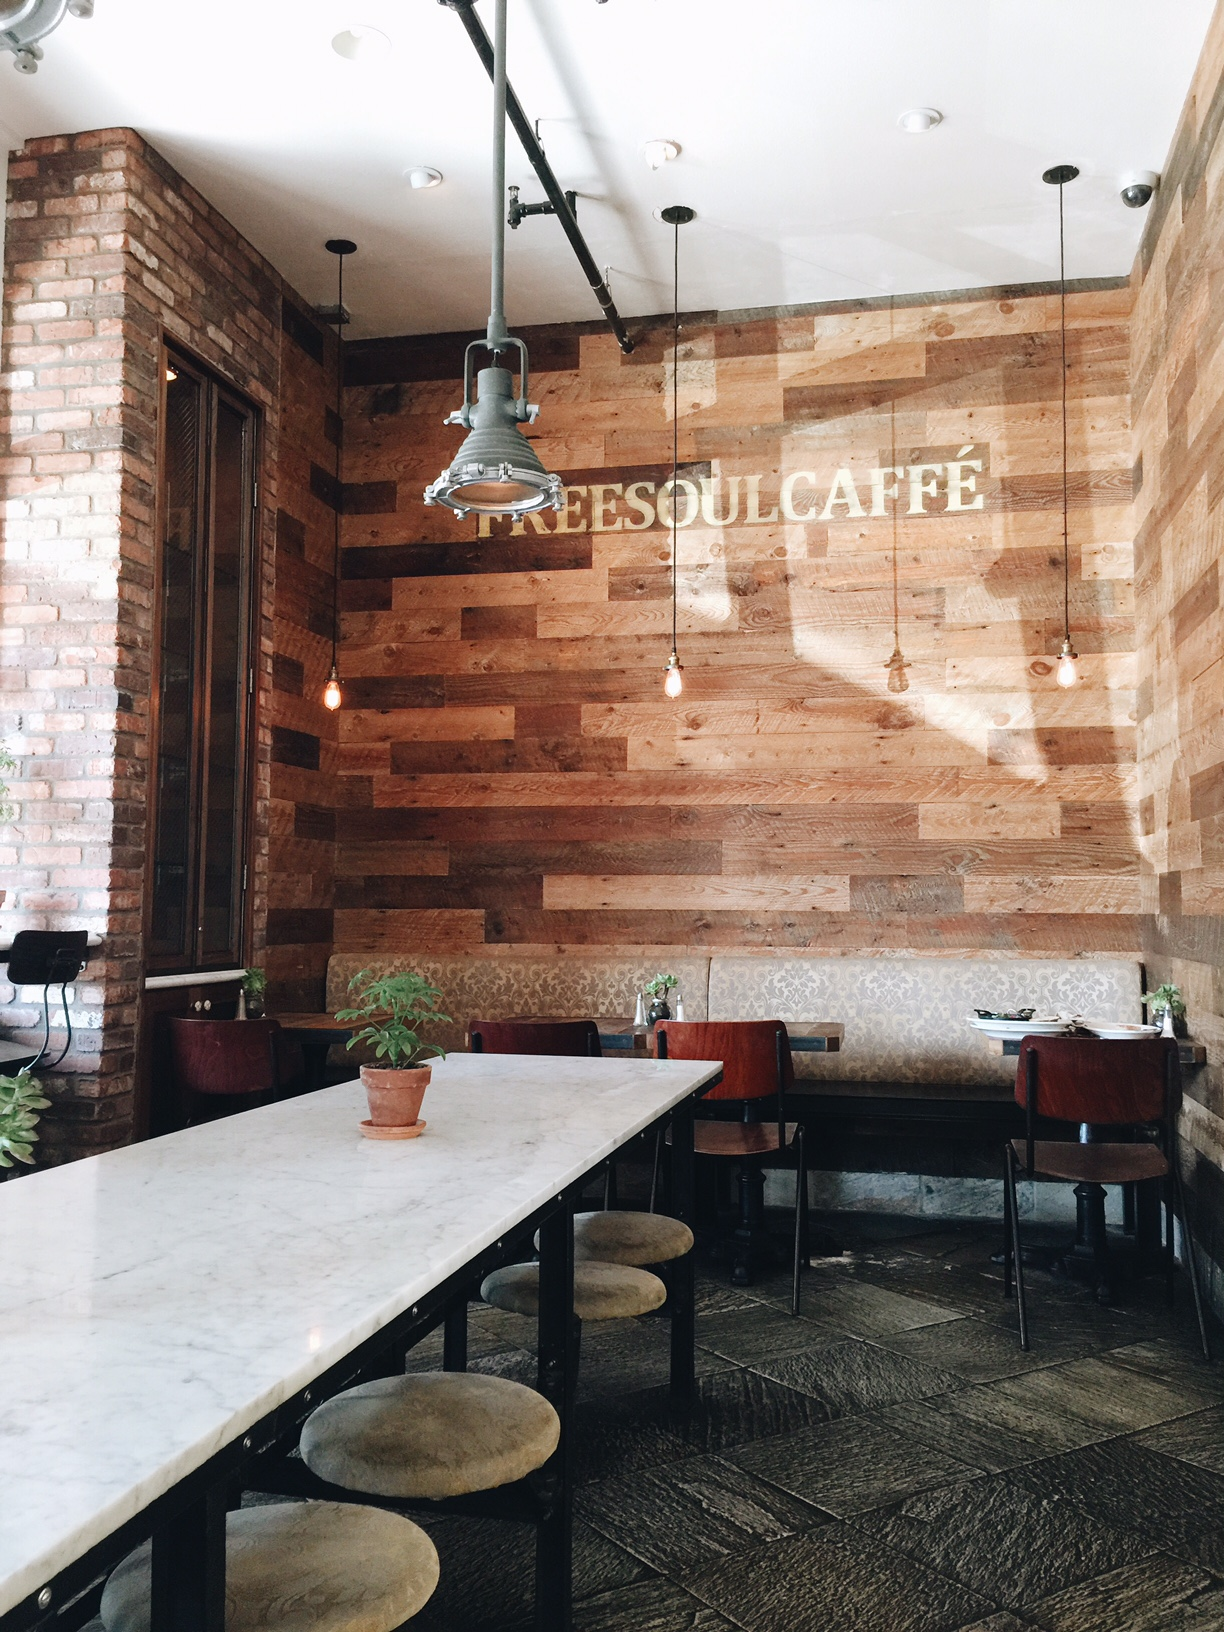 FreeSoulCaffe located in downtown Tustin, CA